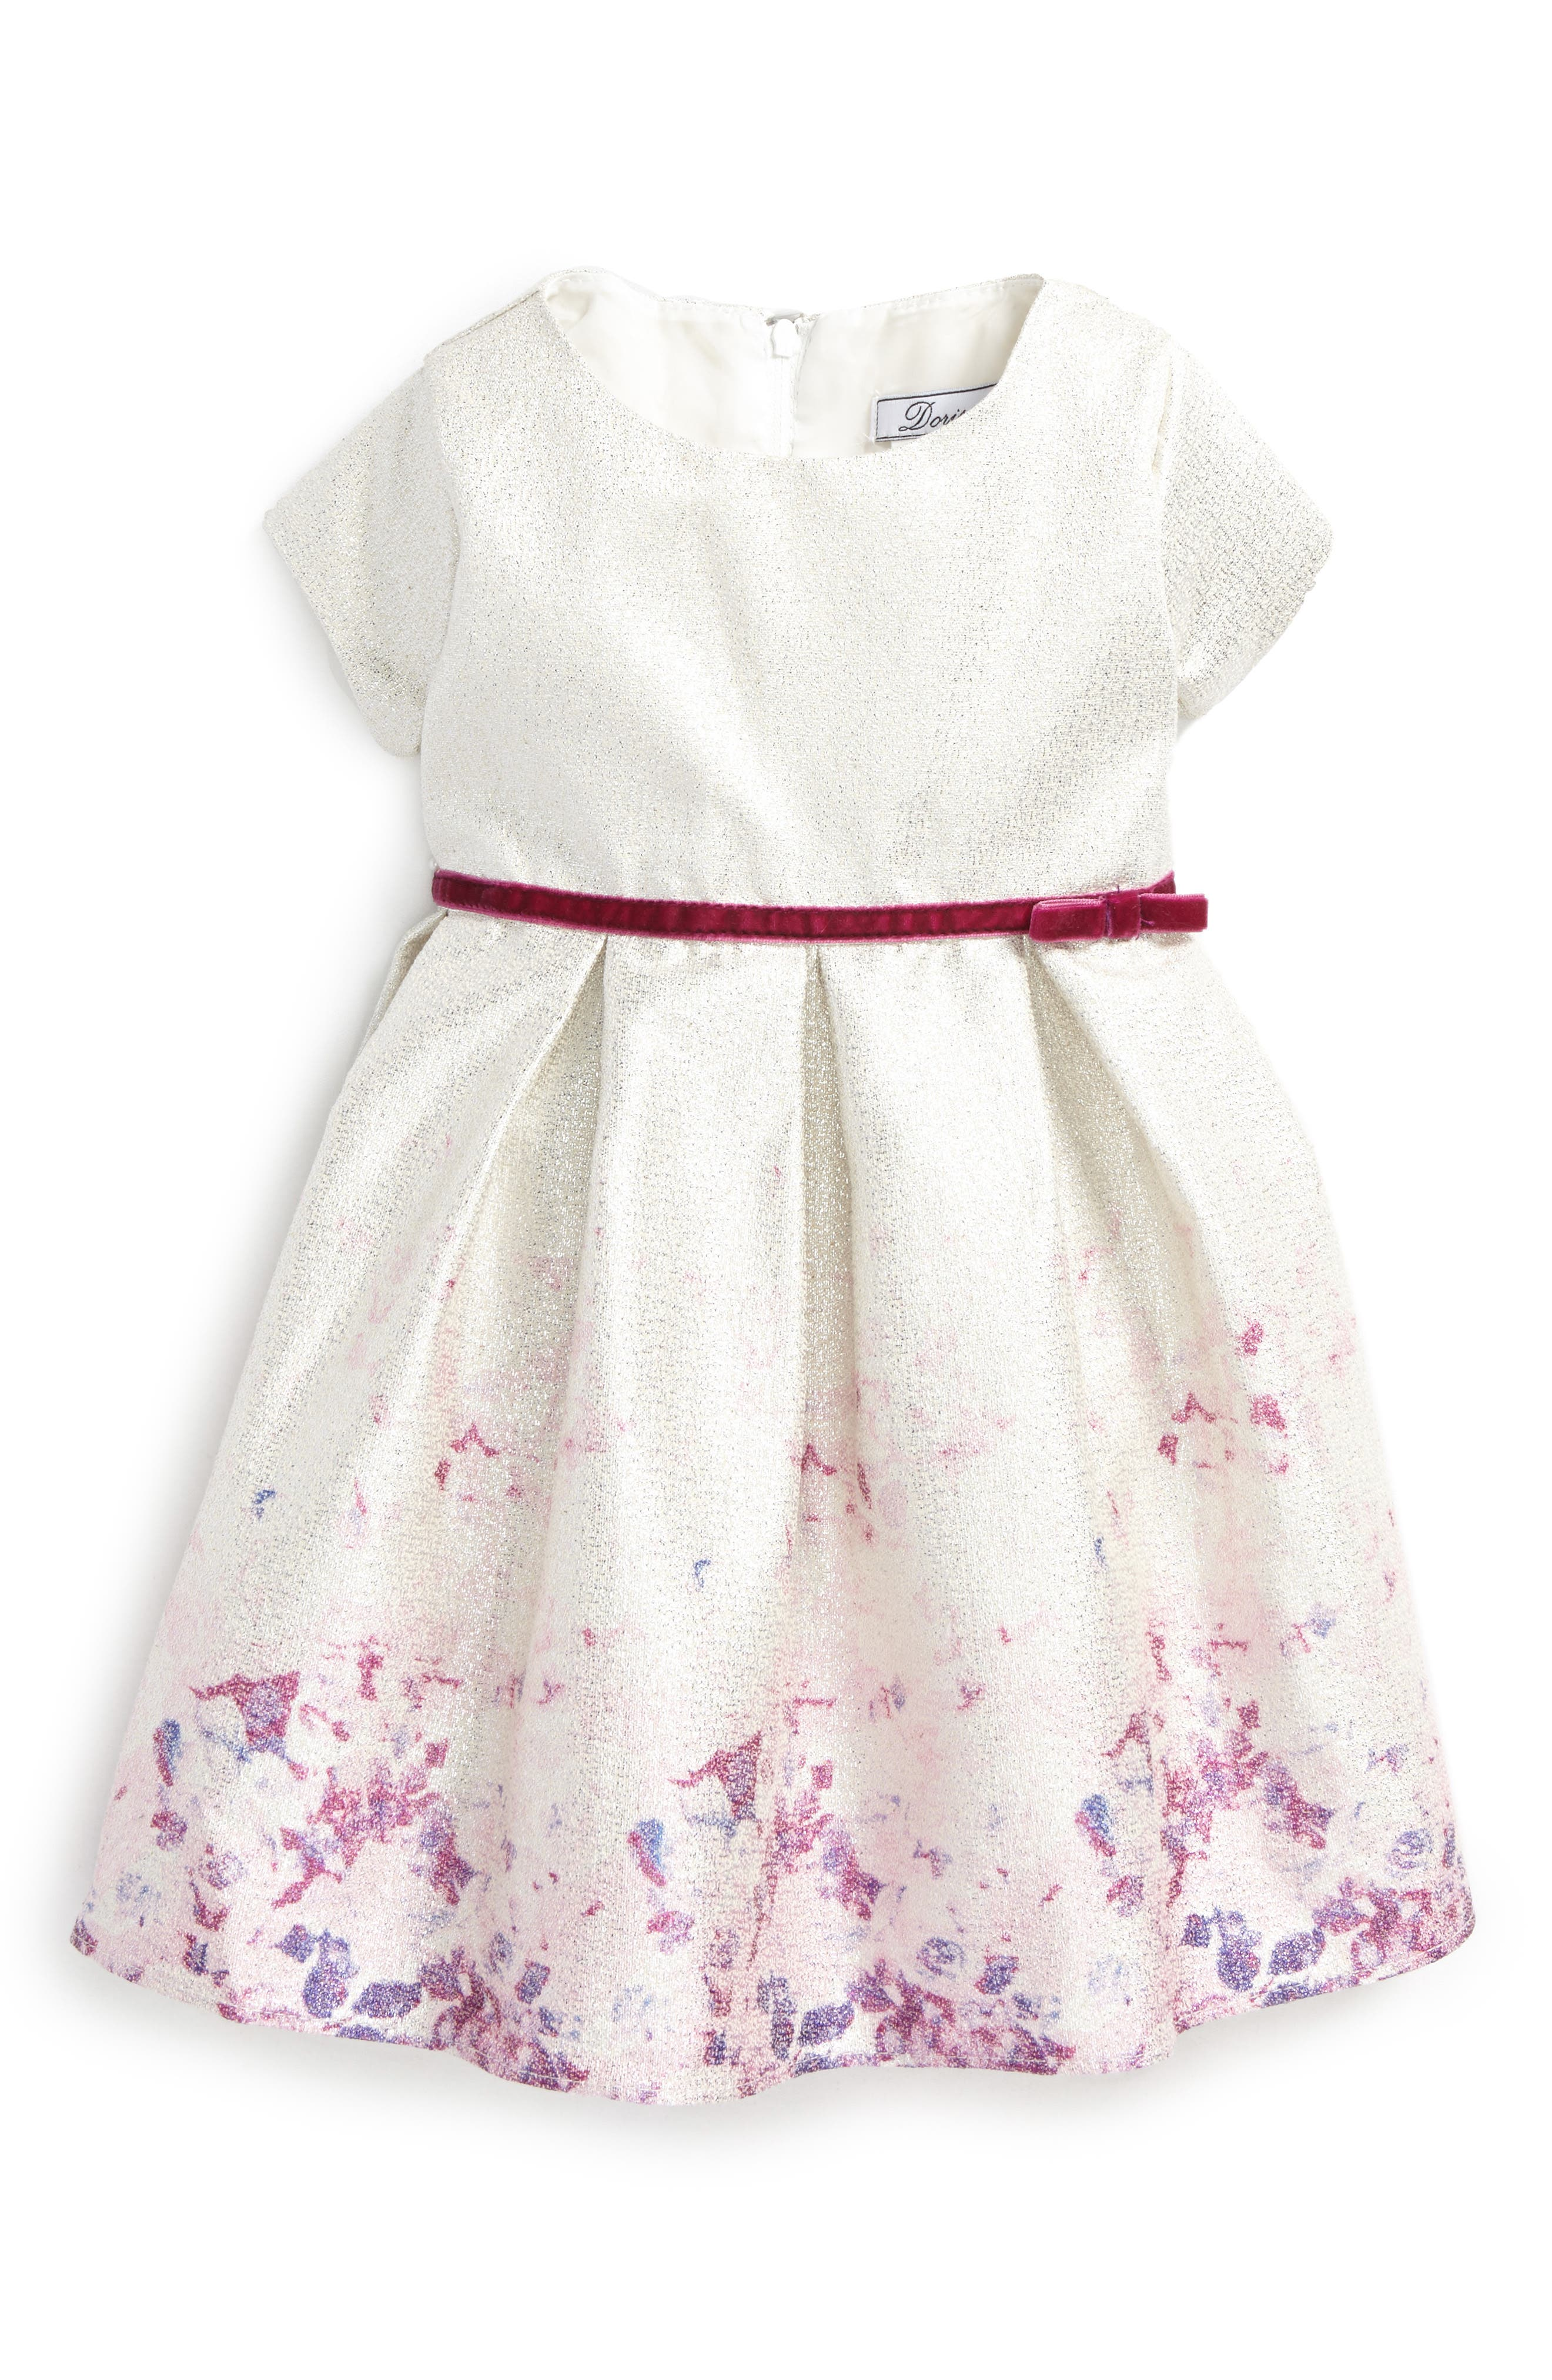 Dorissa Liza Lamé Floral Fit & Flare Dress (Baby Girls)